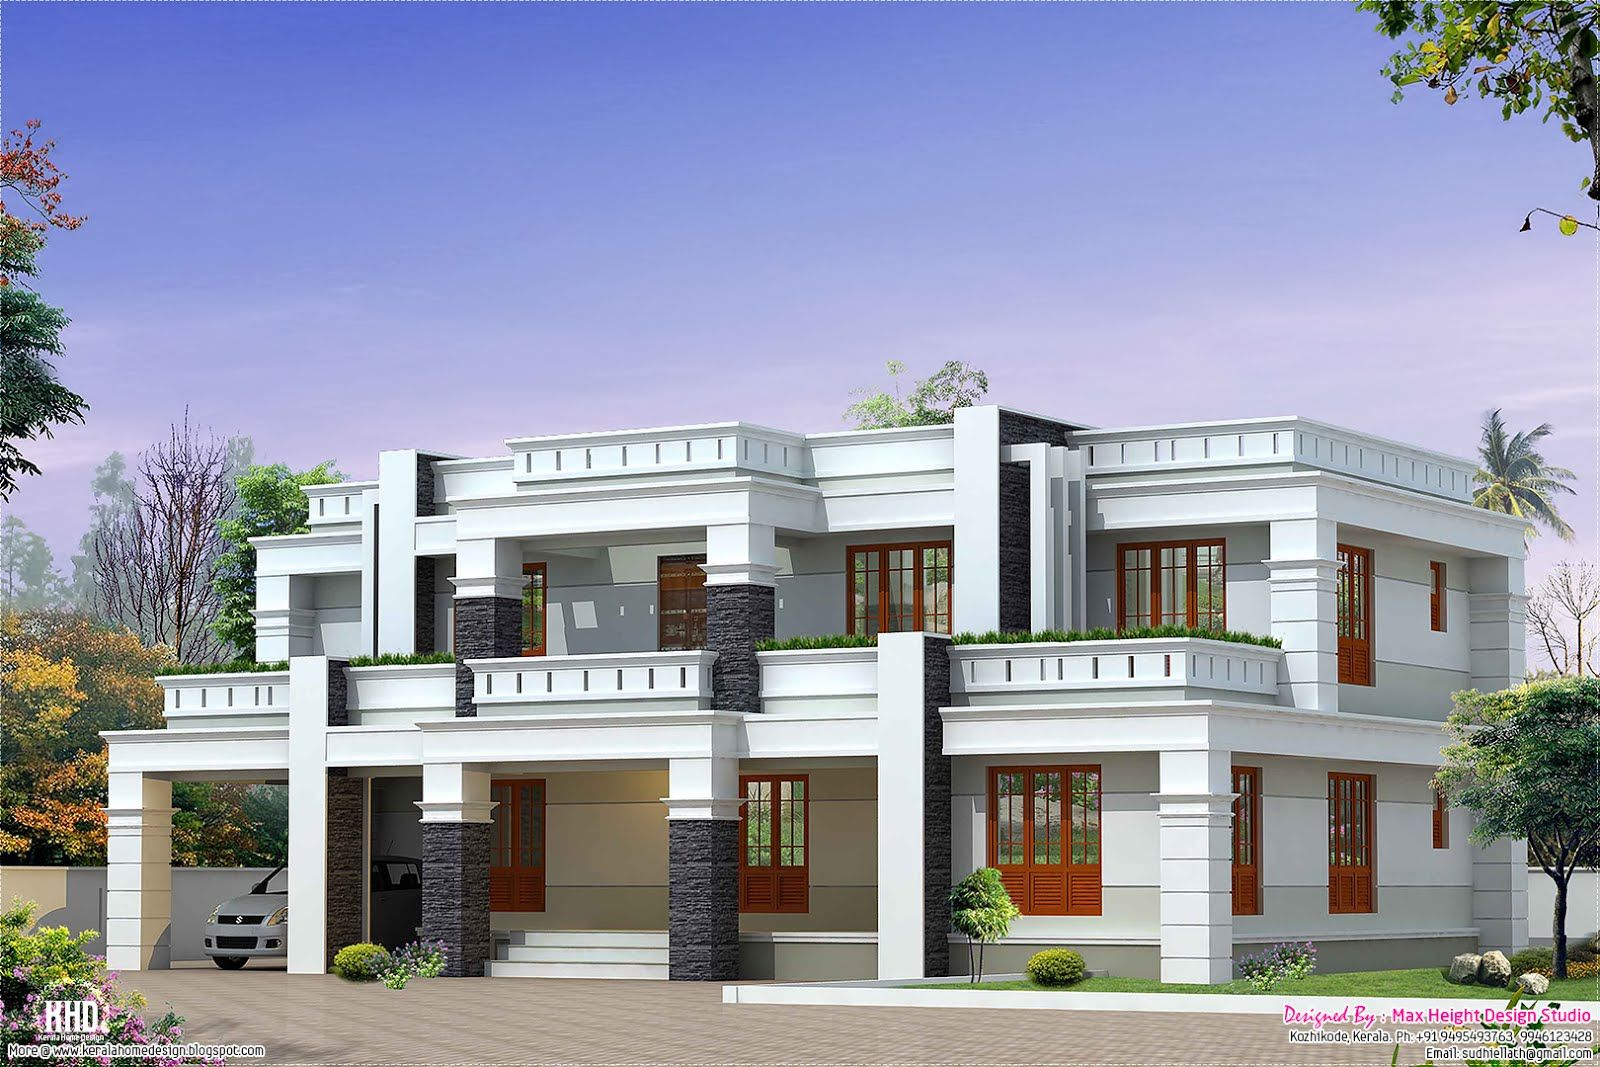 Max height design studio designer sudheesh ellath vatakara kozhikode roof design plans hip roof garage plan